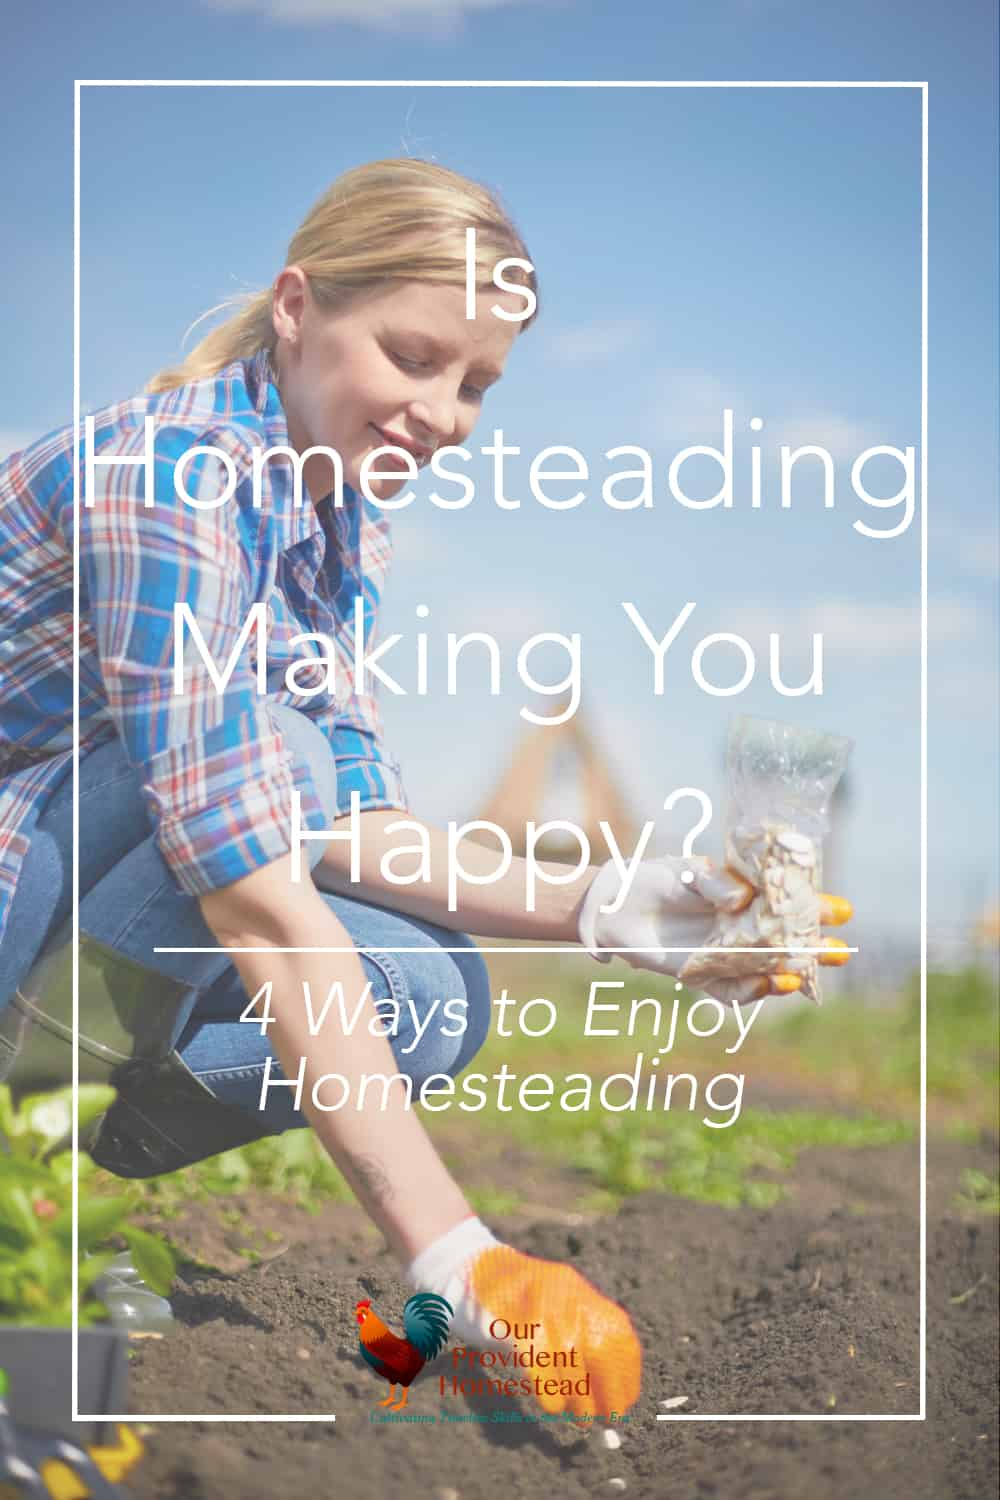 Is homesteading making you happy? Click here to discuss how doing homesteading your own way will keep you from being frustrated and giving up. #homesteading #homesteader #homestead